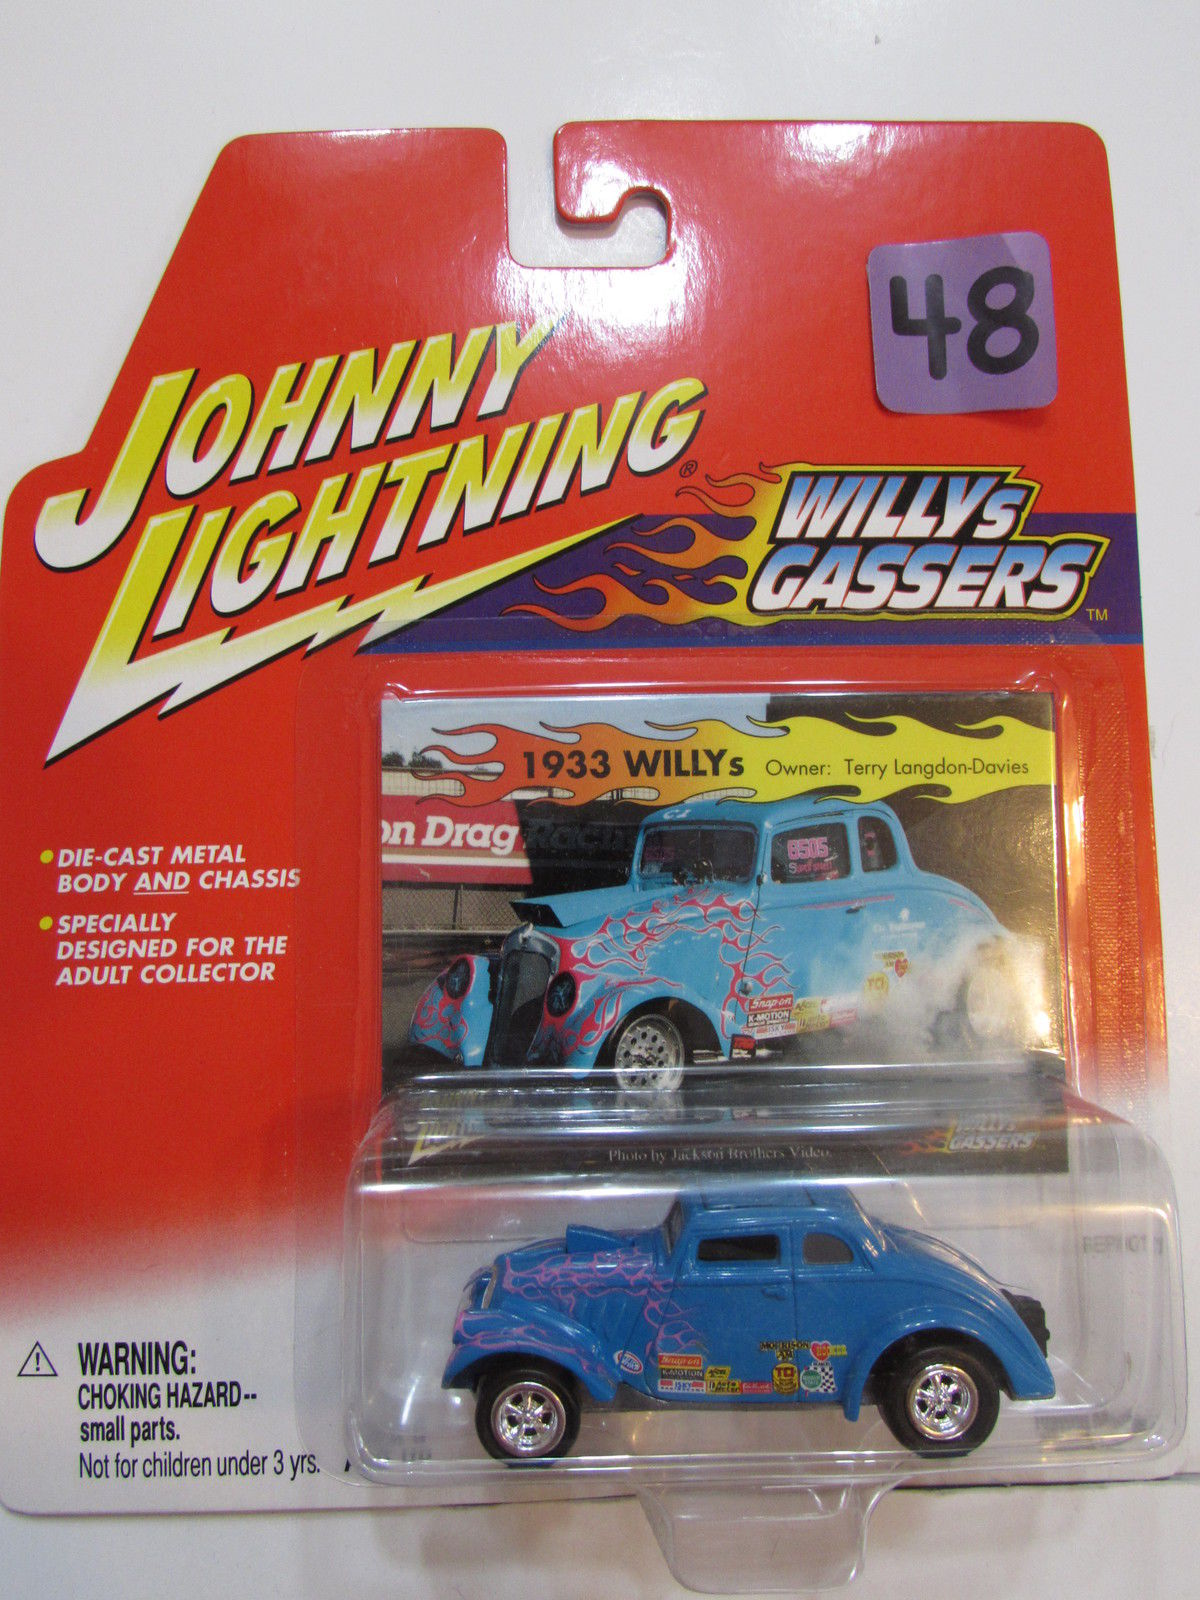 JOHNNY LIGHTNING 2001 WILLYS GASSERS 1933 WILLY'S BLUE